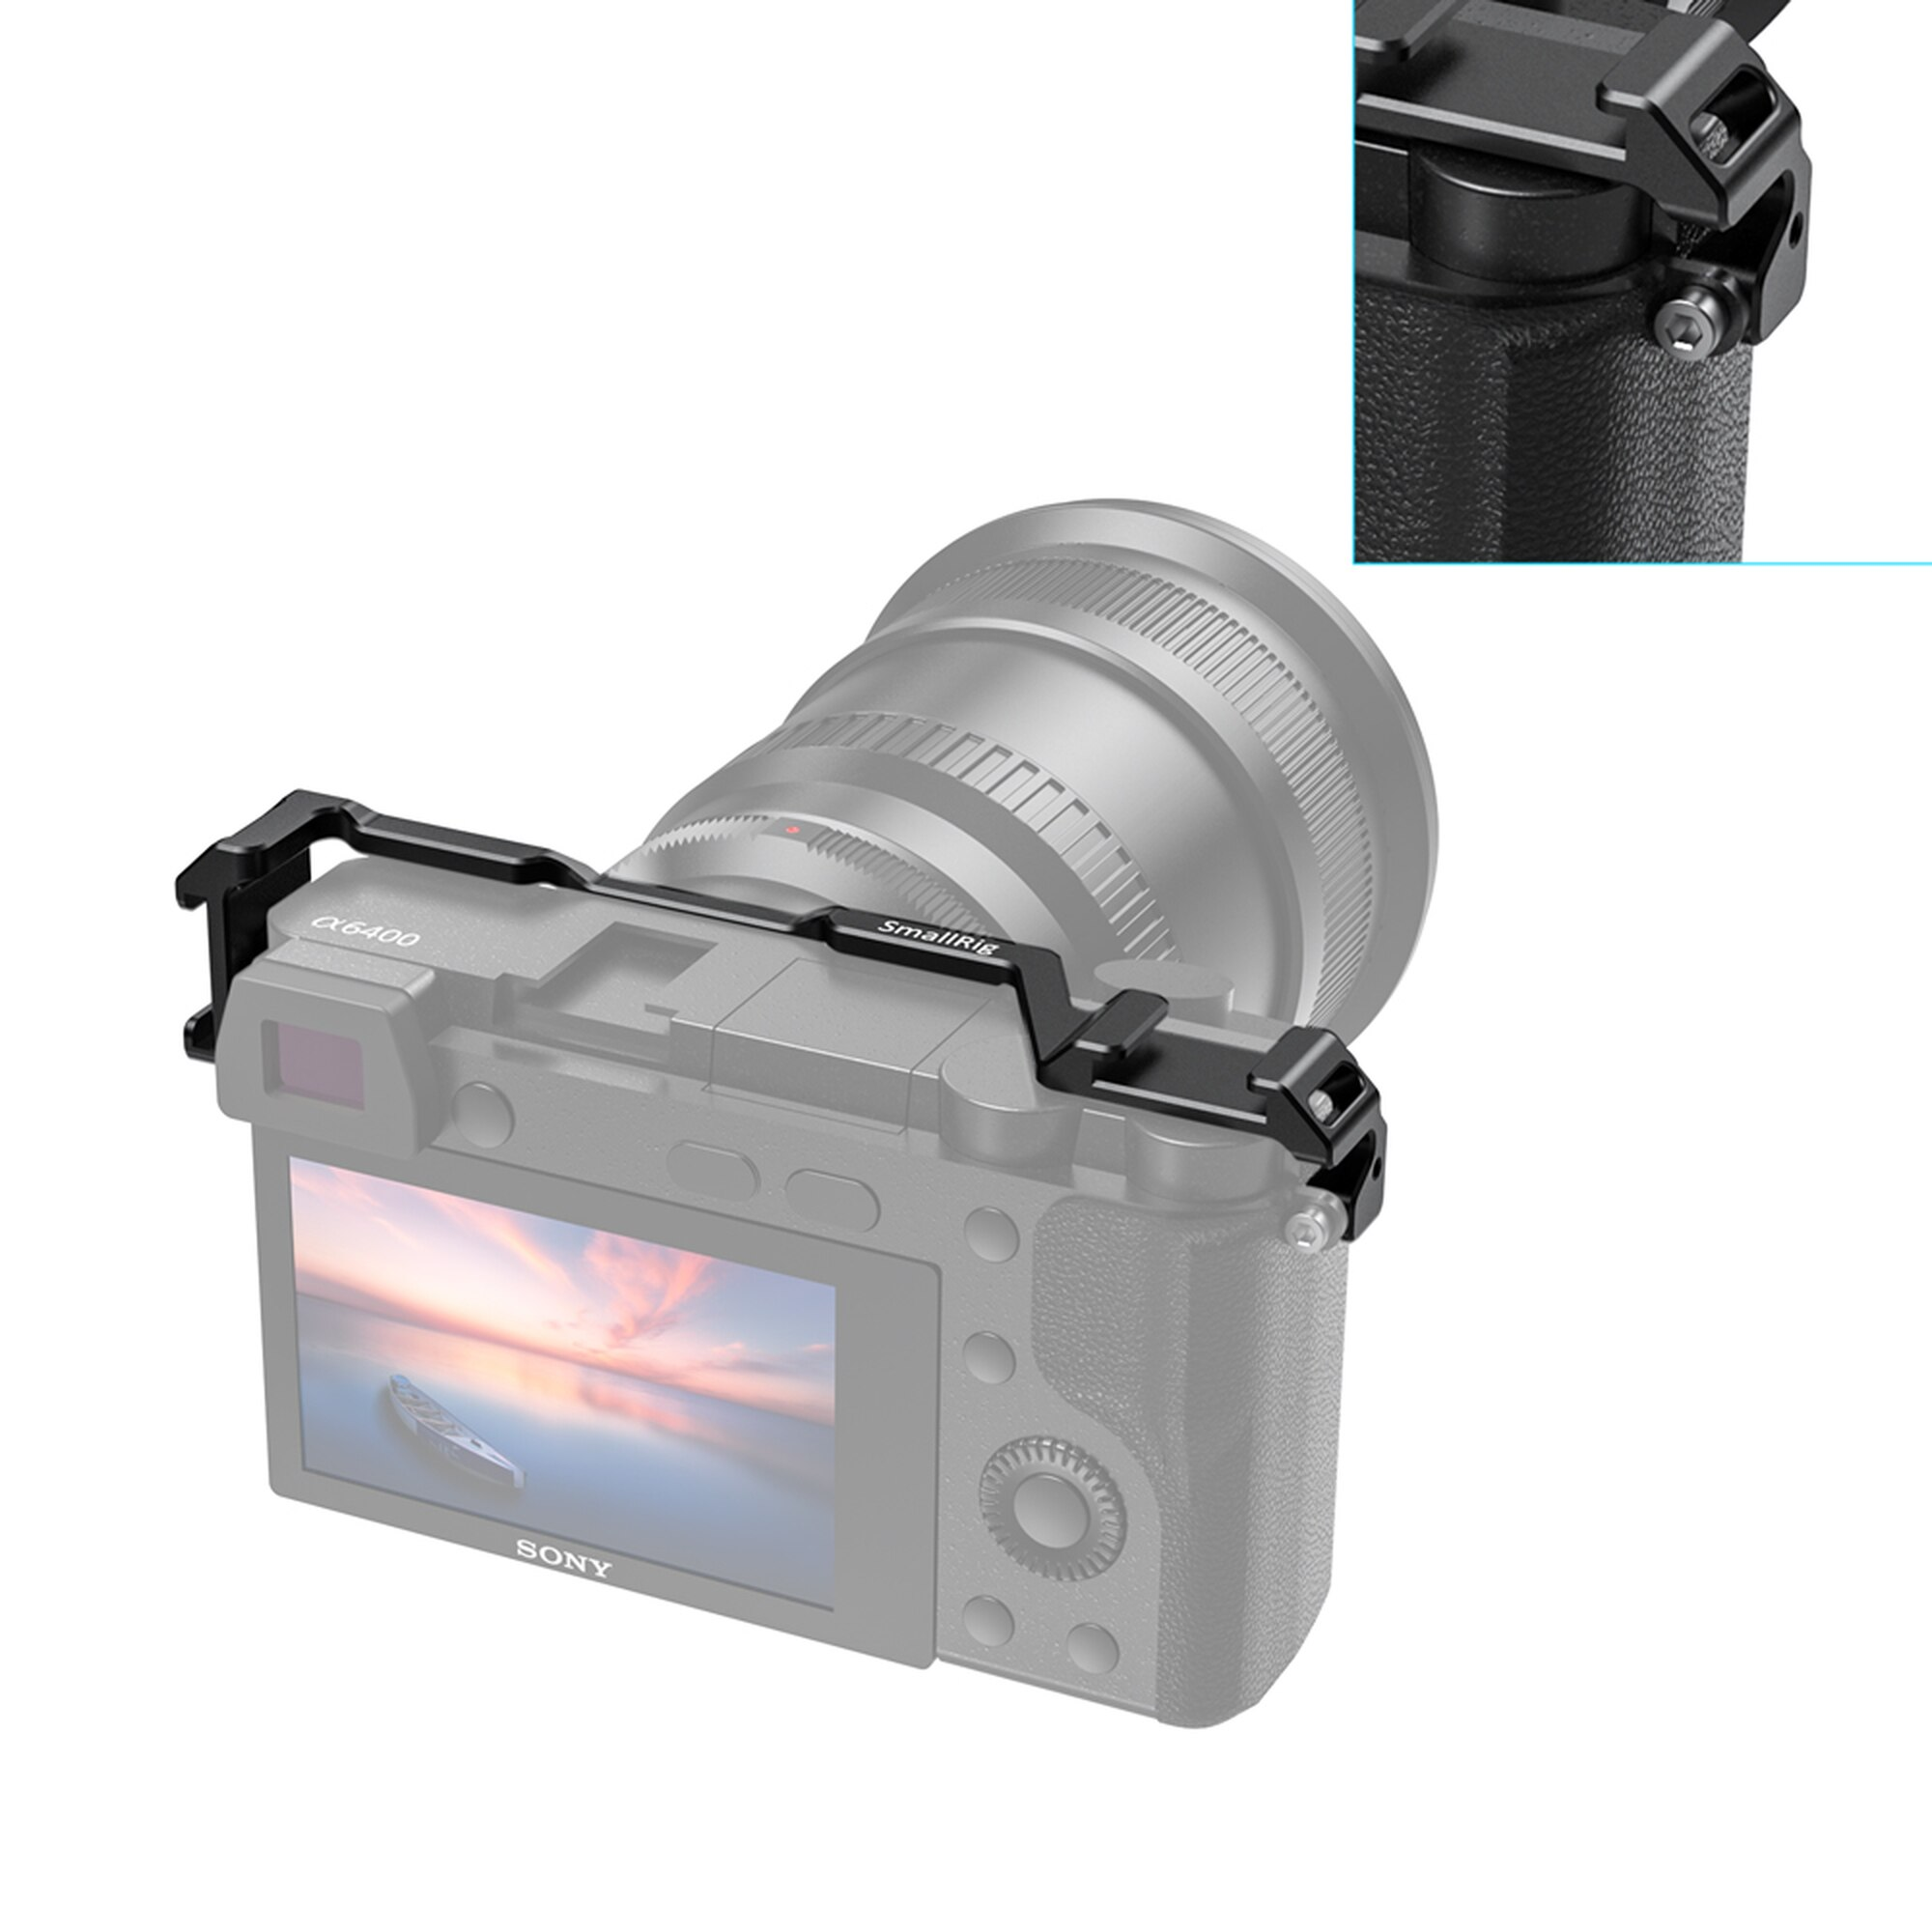 SmallRig Cold Shoe Relocation Mount for Sony A6100 A6300 A6400 A6500 w 2 cold Shoe Mount For Microphone DIY Options 2334 in Tripod Monopods from Consumer Electronics